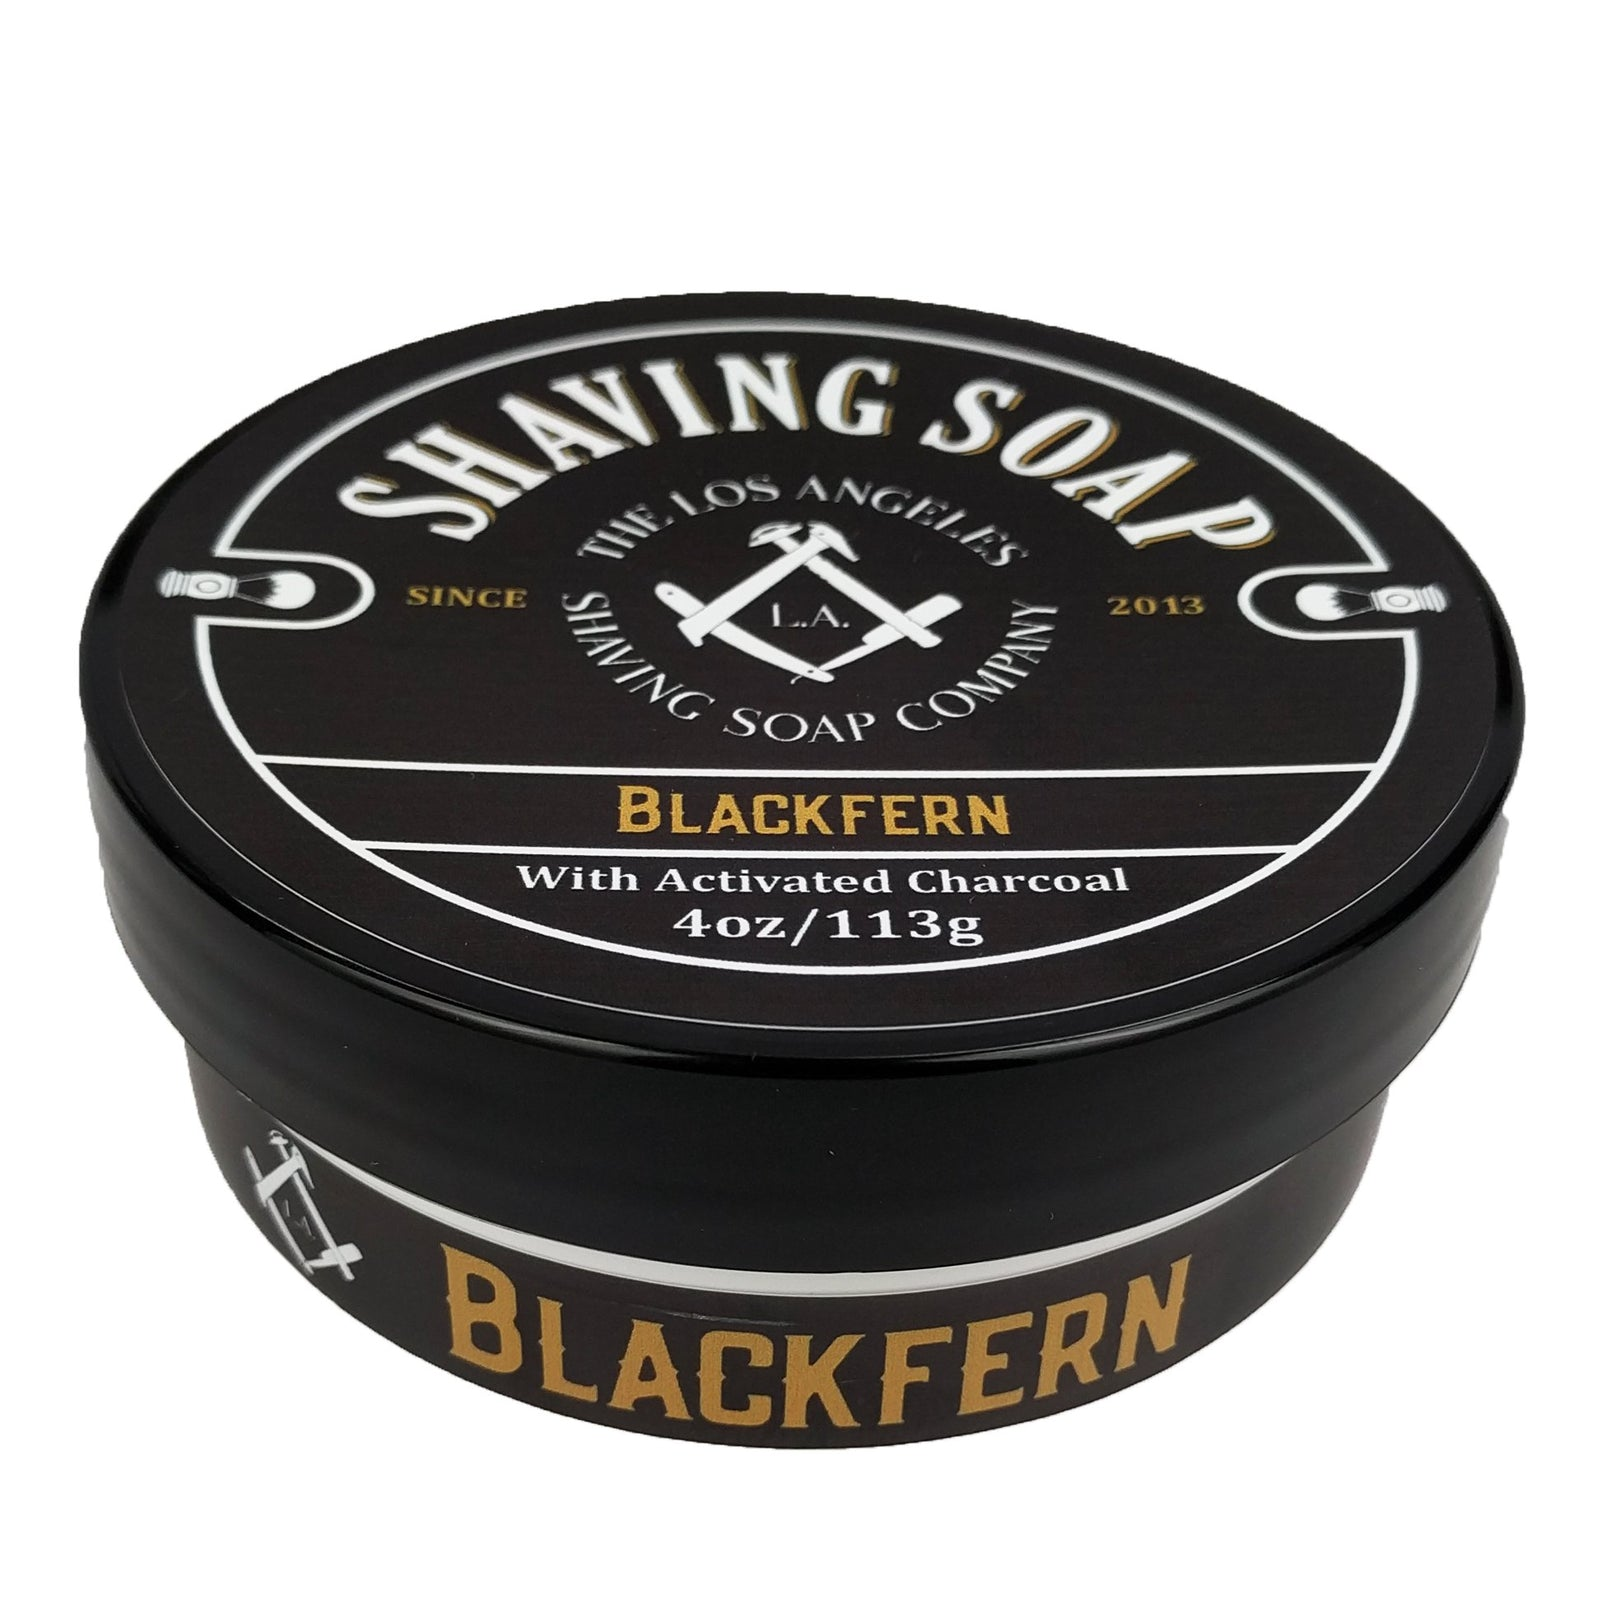 LA Shaving Soap Co - Blackfern Vegan Shaving Soap